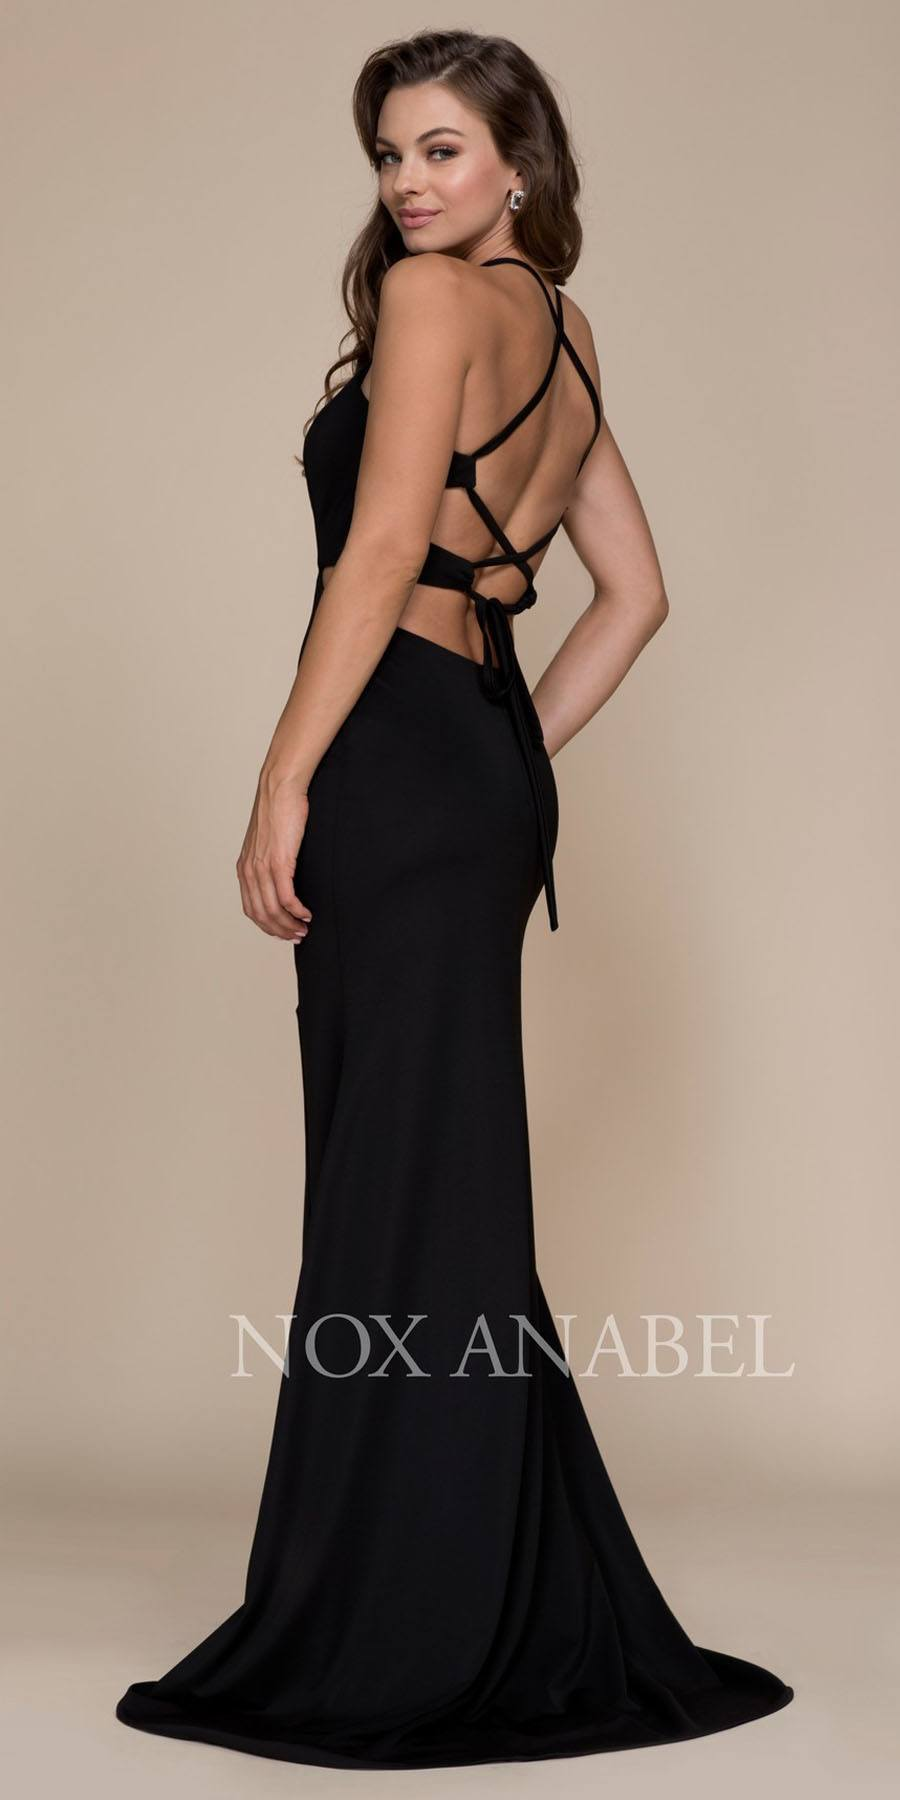 2d83d6c27cf Nox Anabel C026 Black Halter Cut Out Long Prom Dress Strappy Back ...